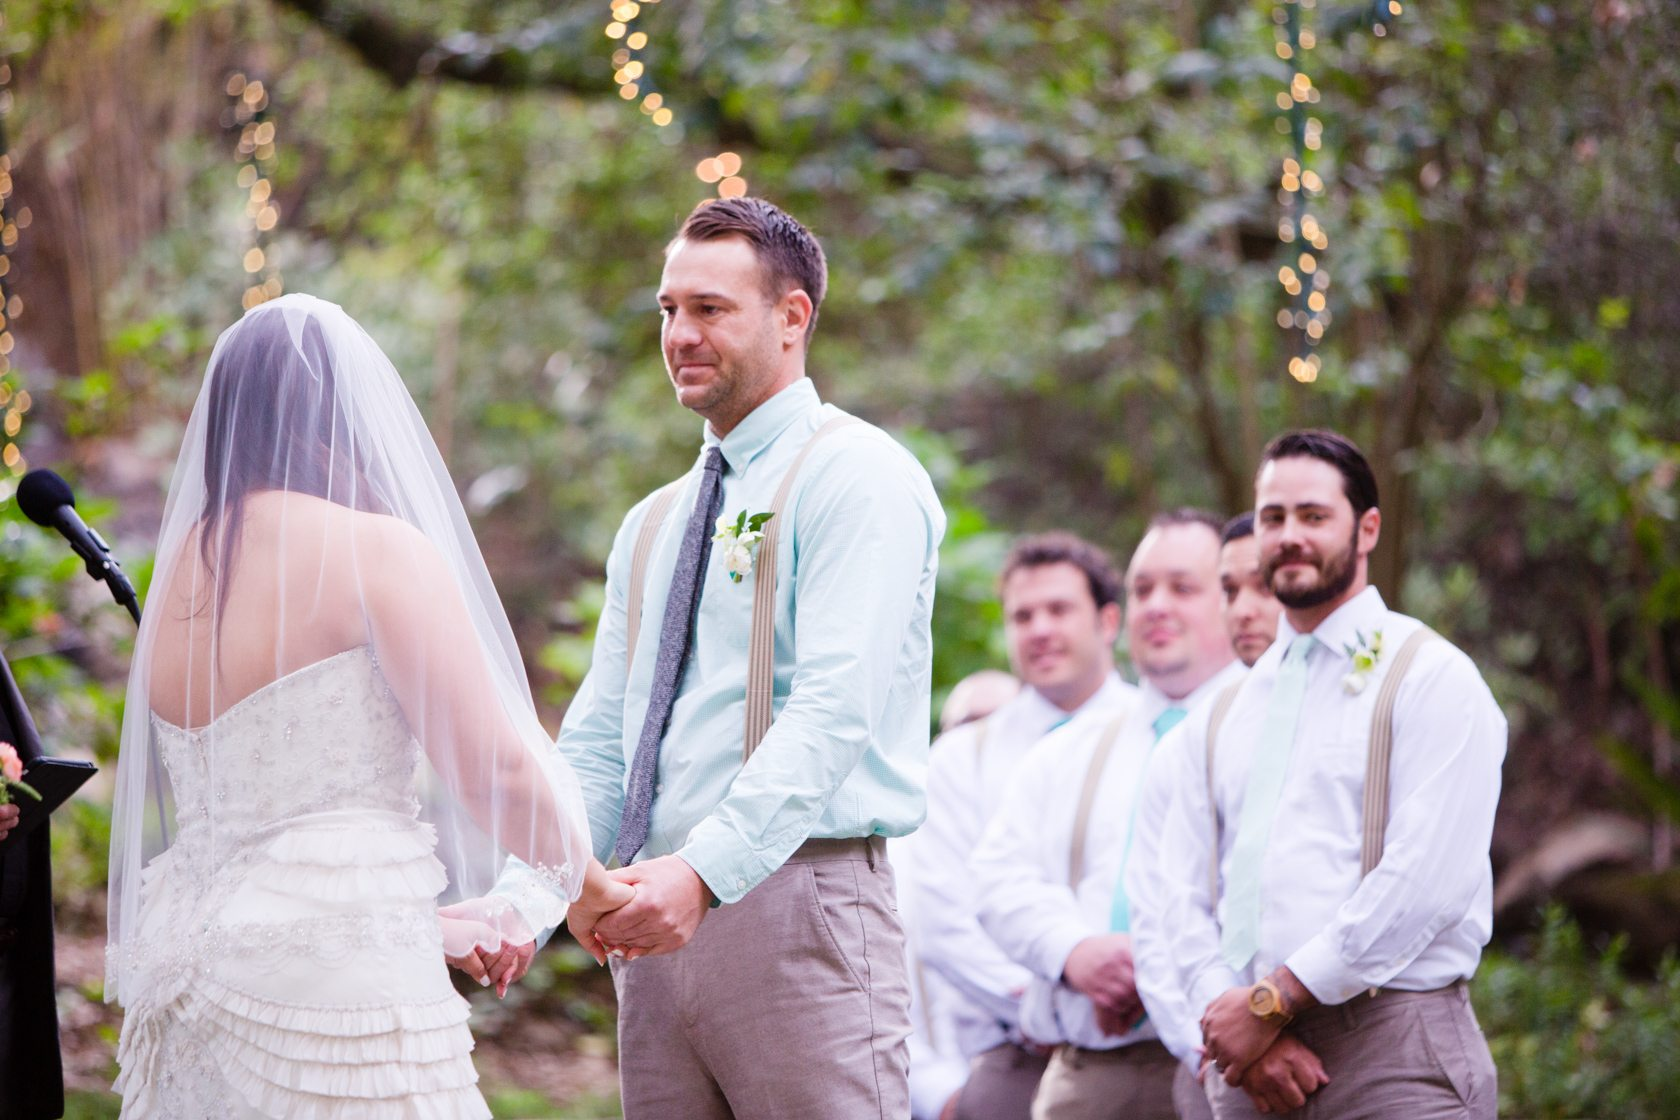 The_Printed_Palette_Wedding_at_Calamigos_Ranch_056.jpg